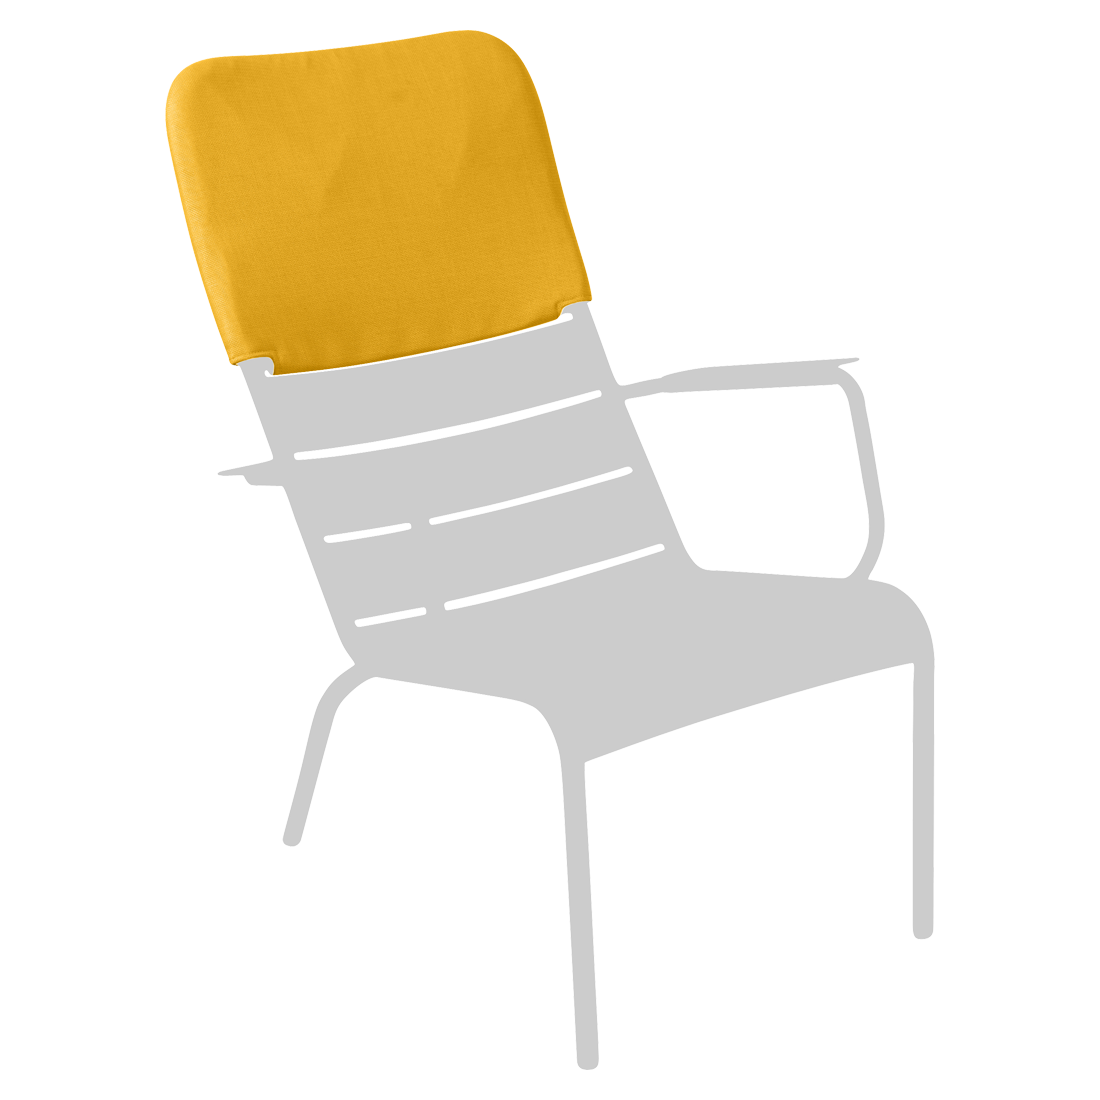 LUXEMBOURG / LOW ARMCHAIR HEADREST